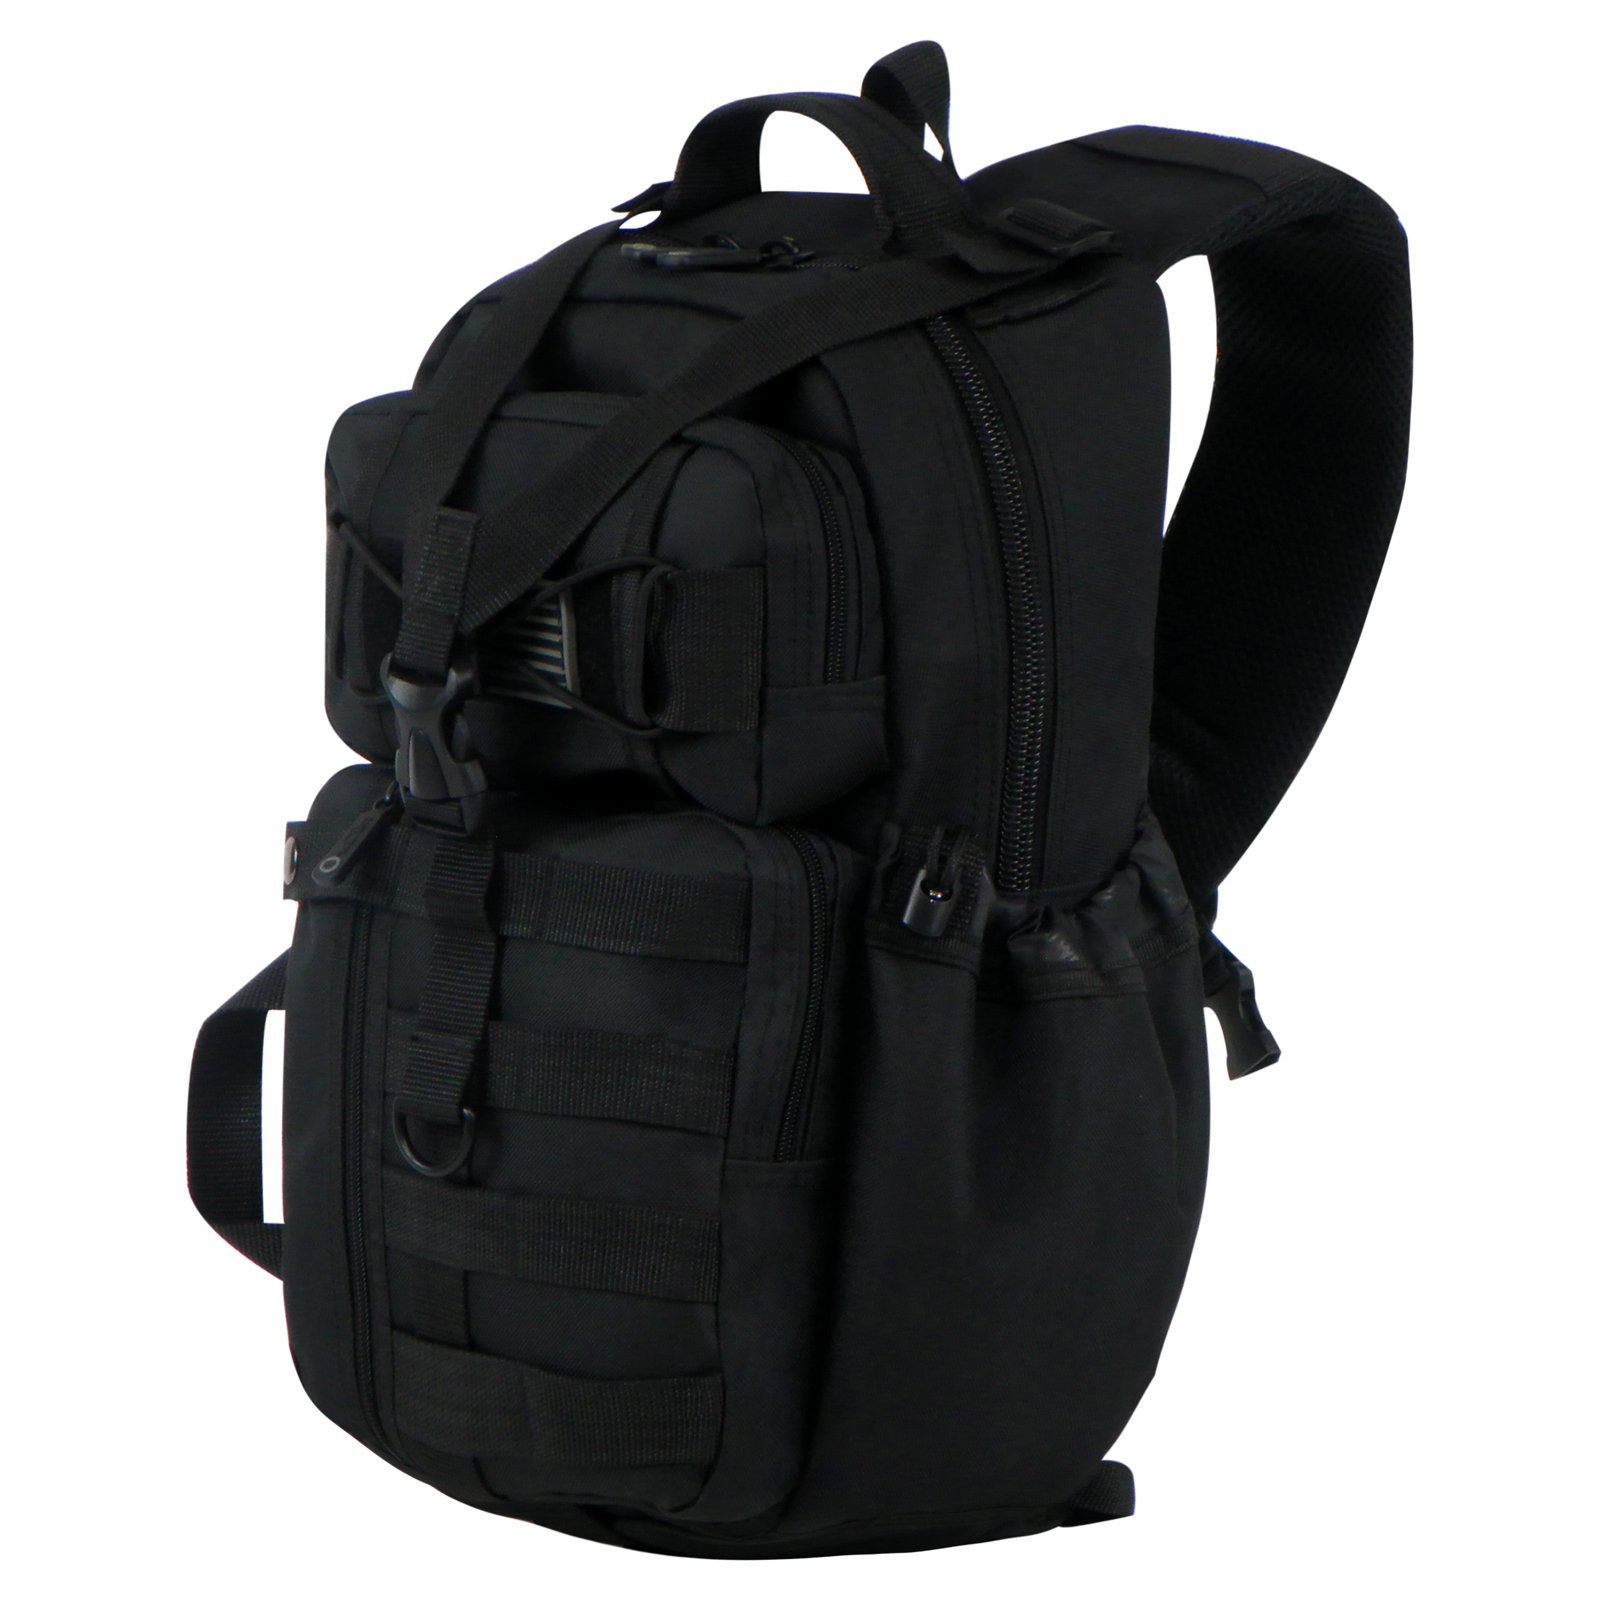 East West U.S.A. Tactical Molle Shoulder Sling Backpack